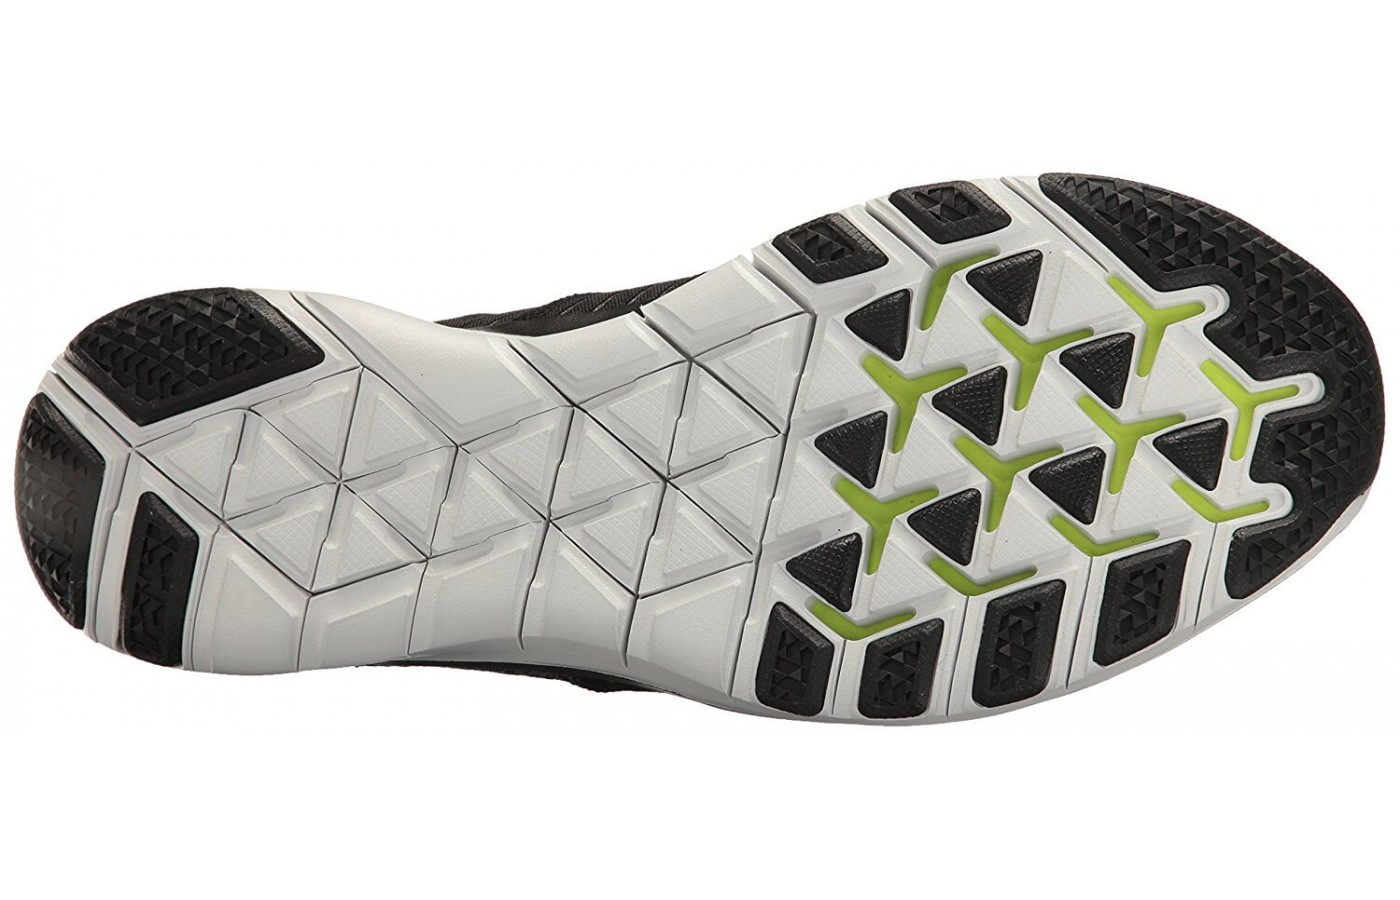 The Nike Free Train Virtue's outsole features Tri-Star flex grooves